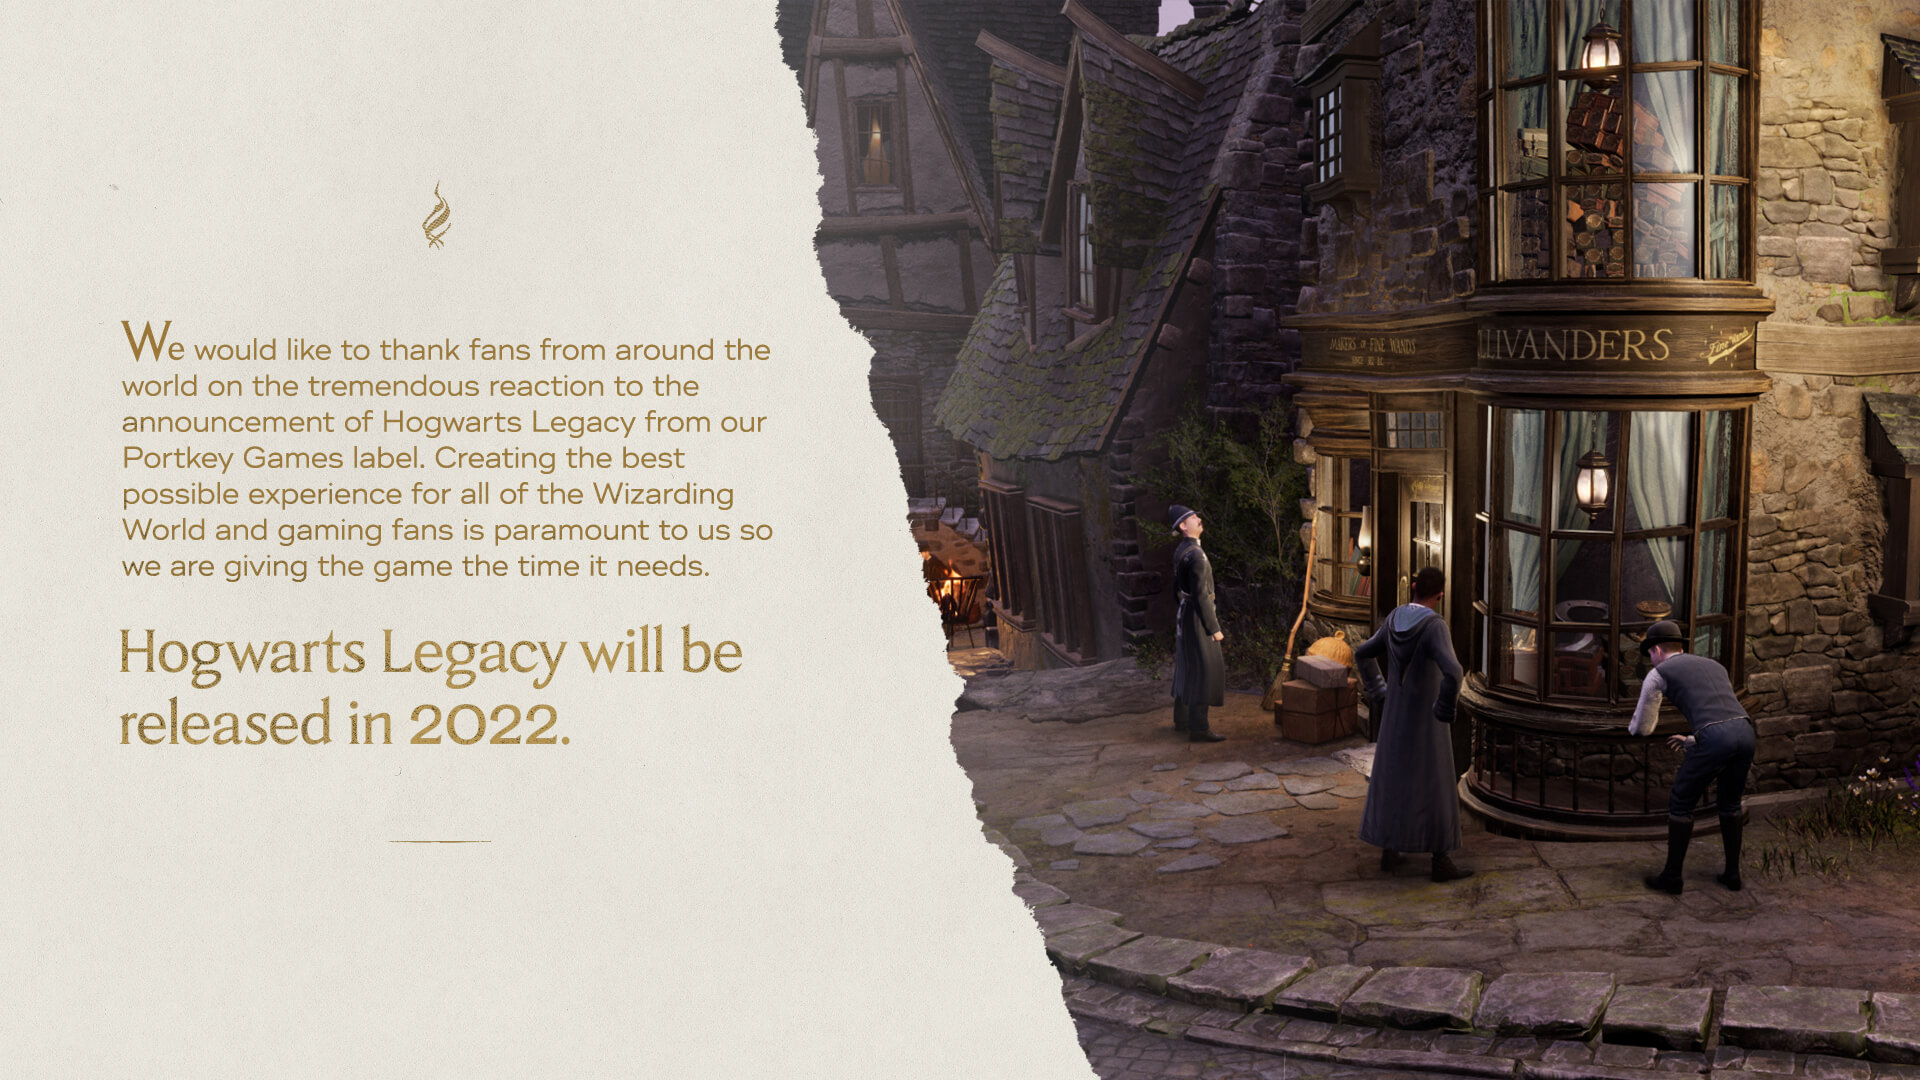 Hogwarts Legacy 2022 release date